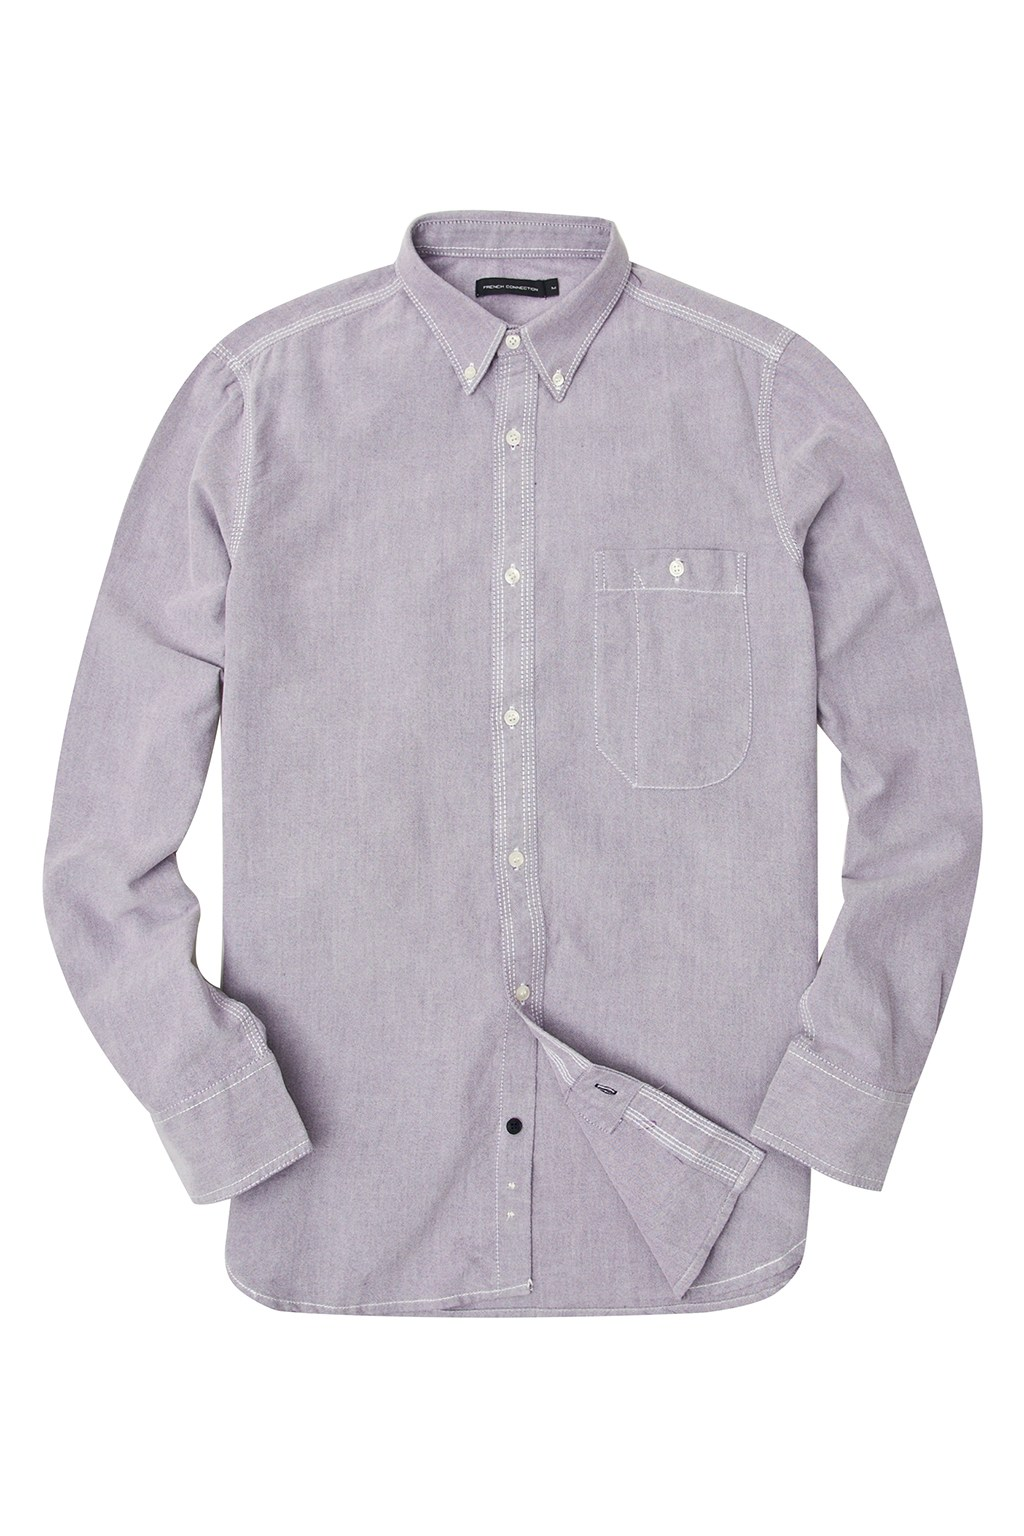 Supersoft Oxford Shirt Shirts French Connection Usa